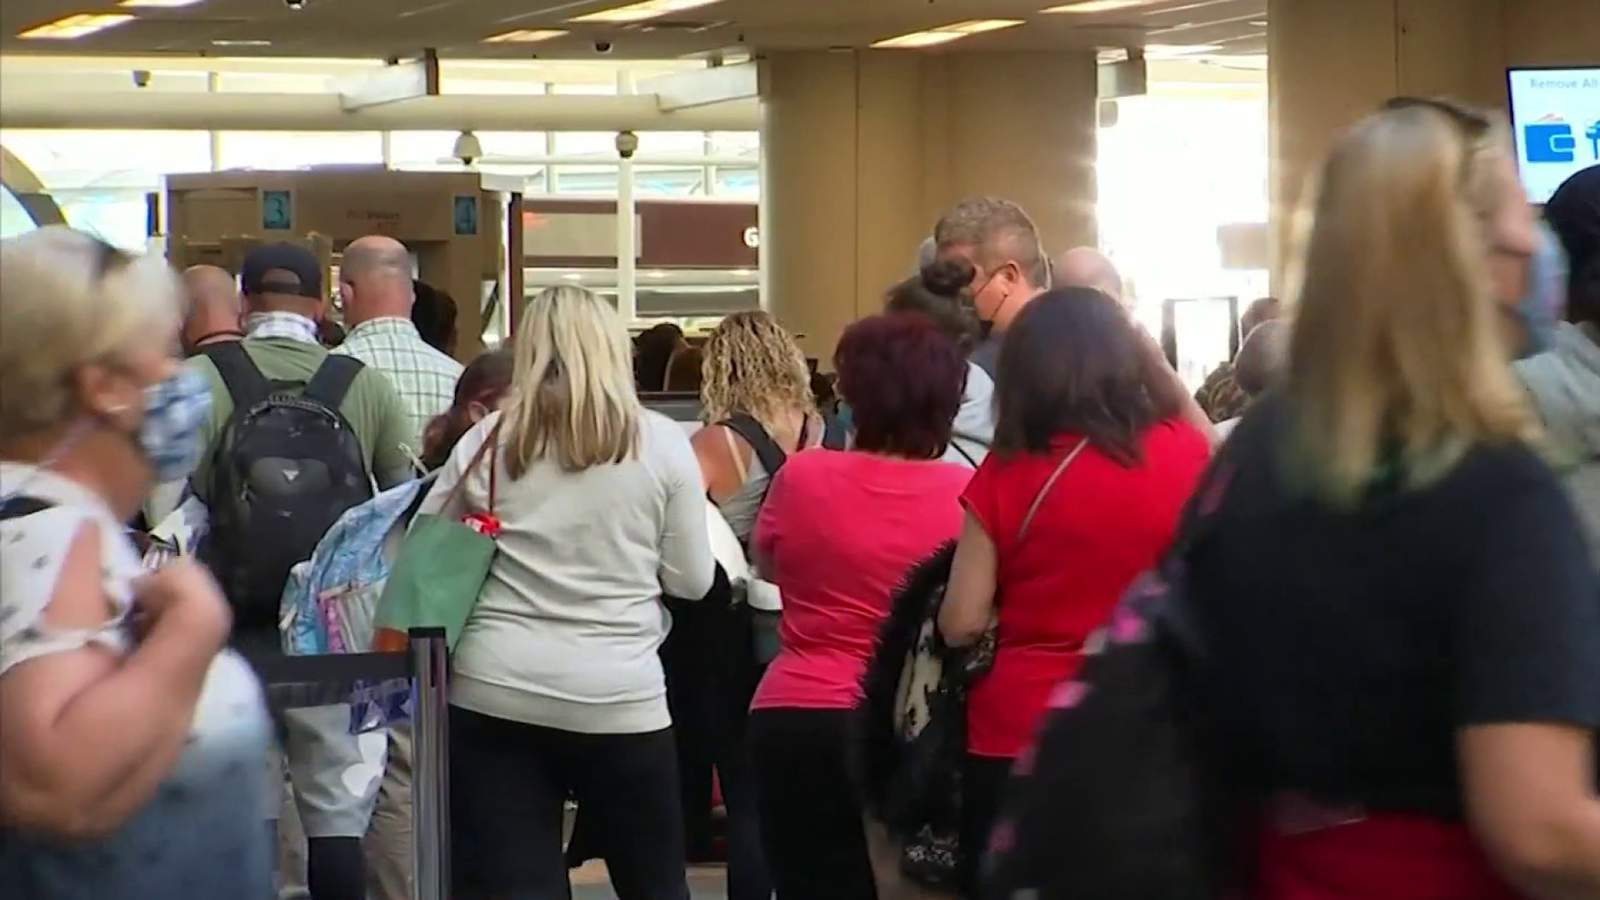 Orlando airport bustling as families travel during spring break